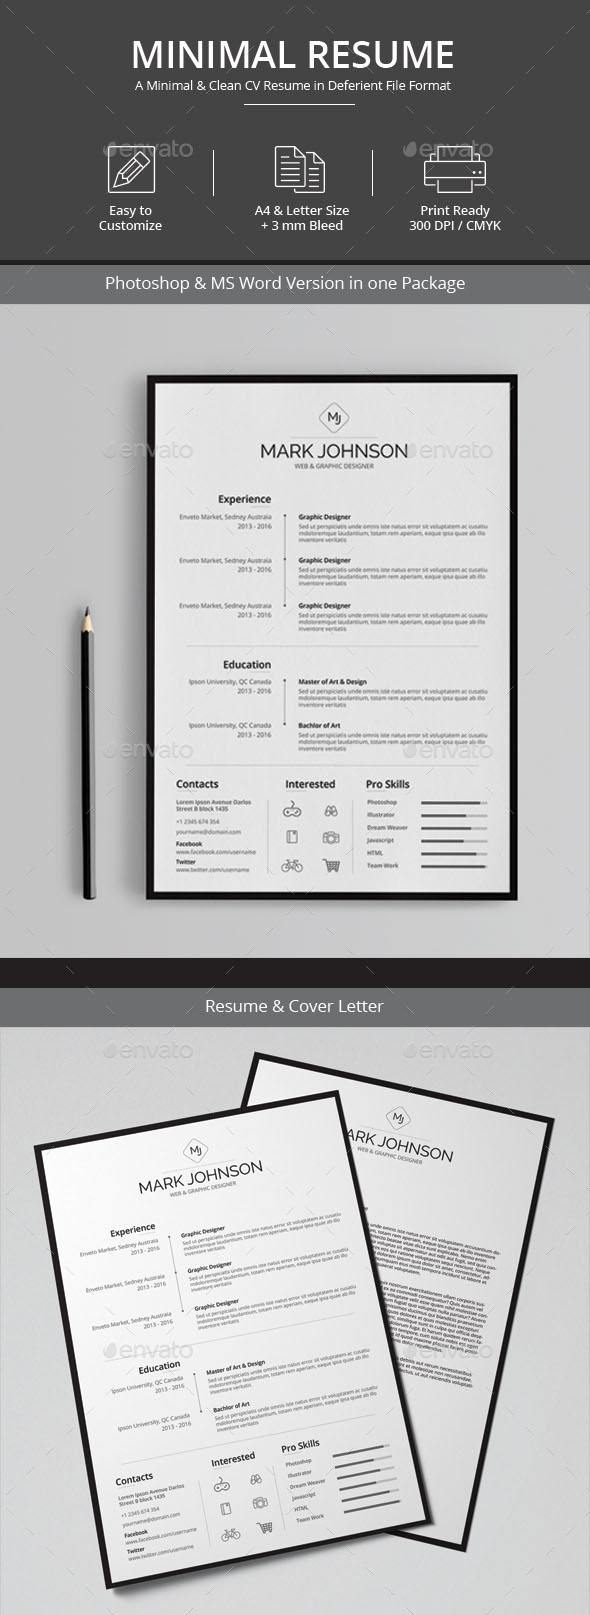 Awesome Resume Cv Templates  Word Indesign Psd